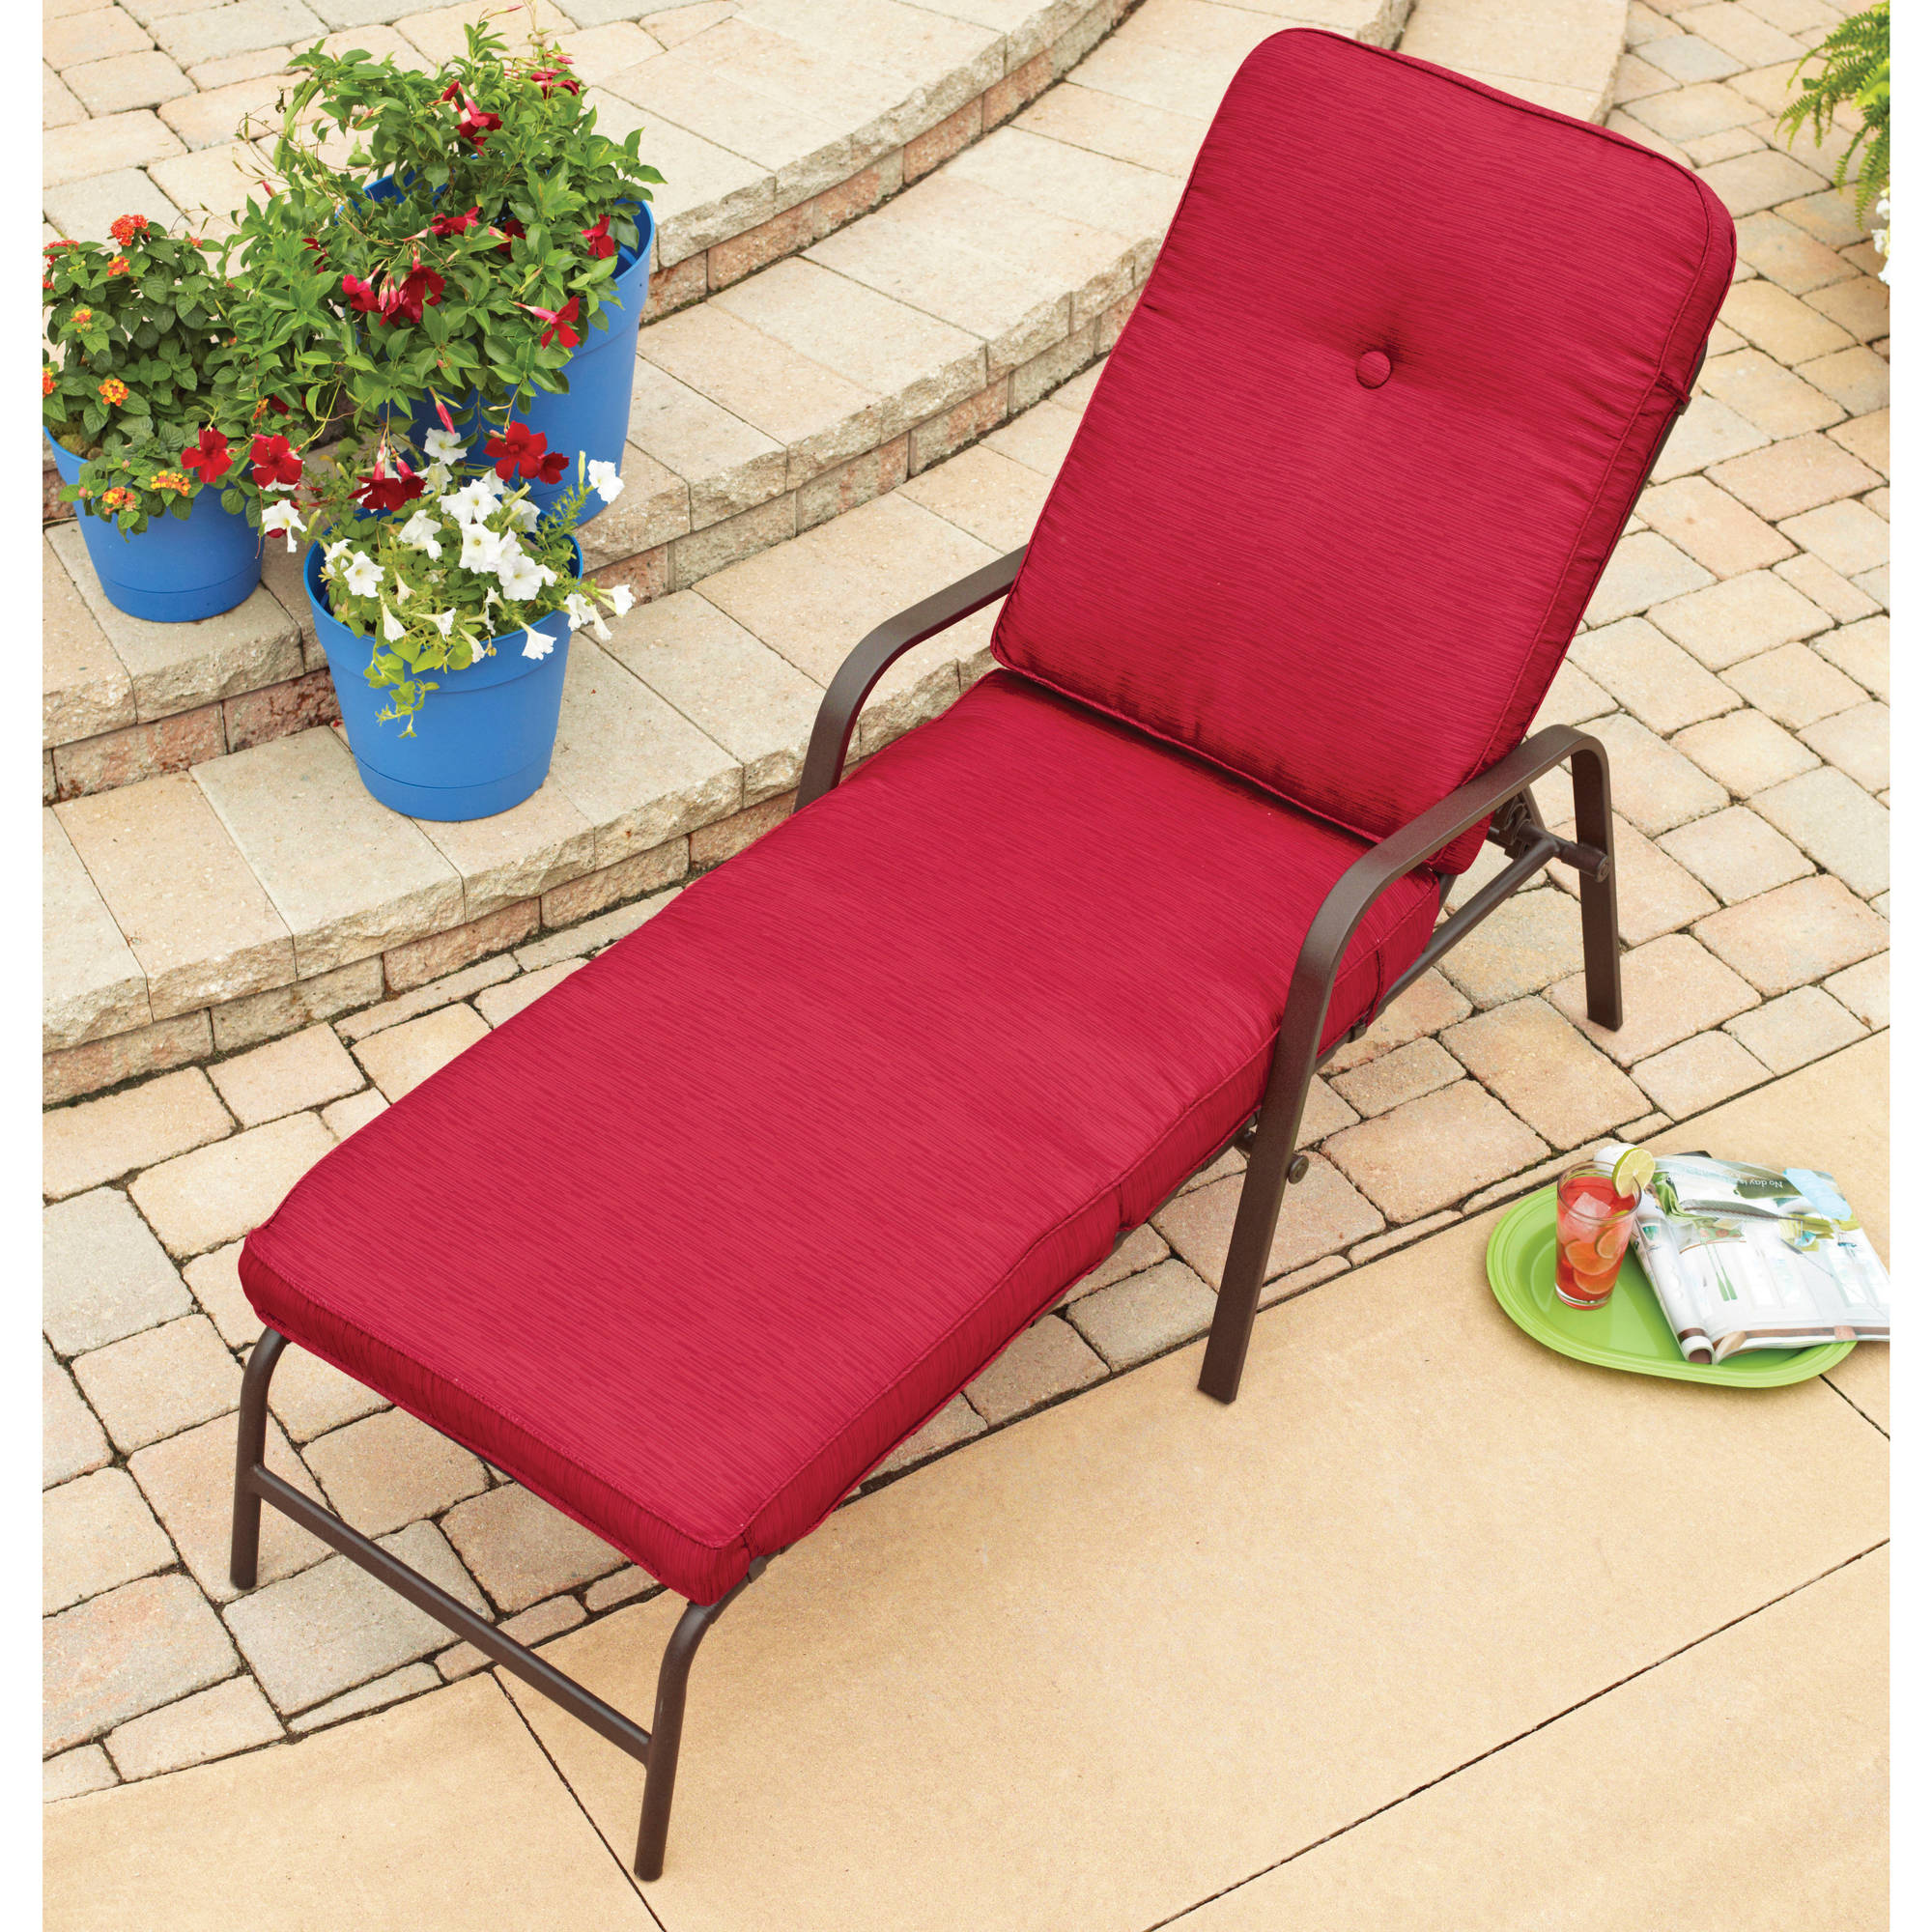 Big and Tall Outdoor Sling Bungee Lounger  Tan   Walmart com. Outdoor Lounge Chairs Walmart. Home Design Ideas